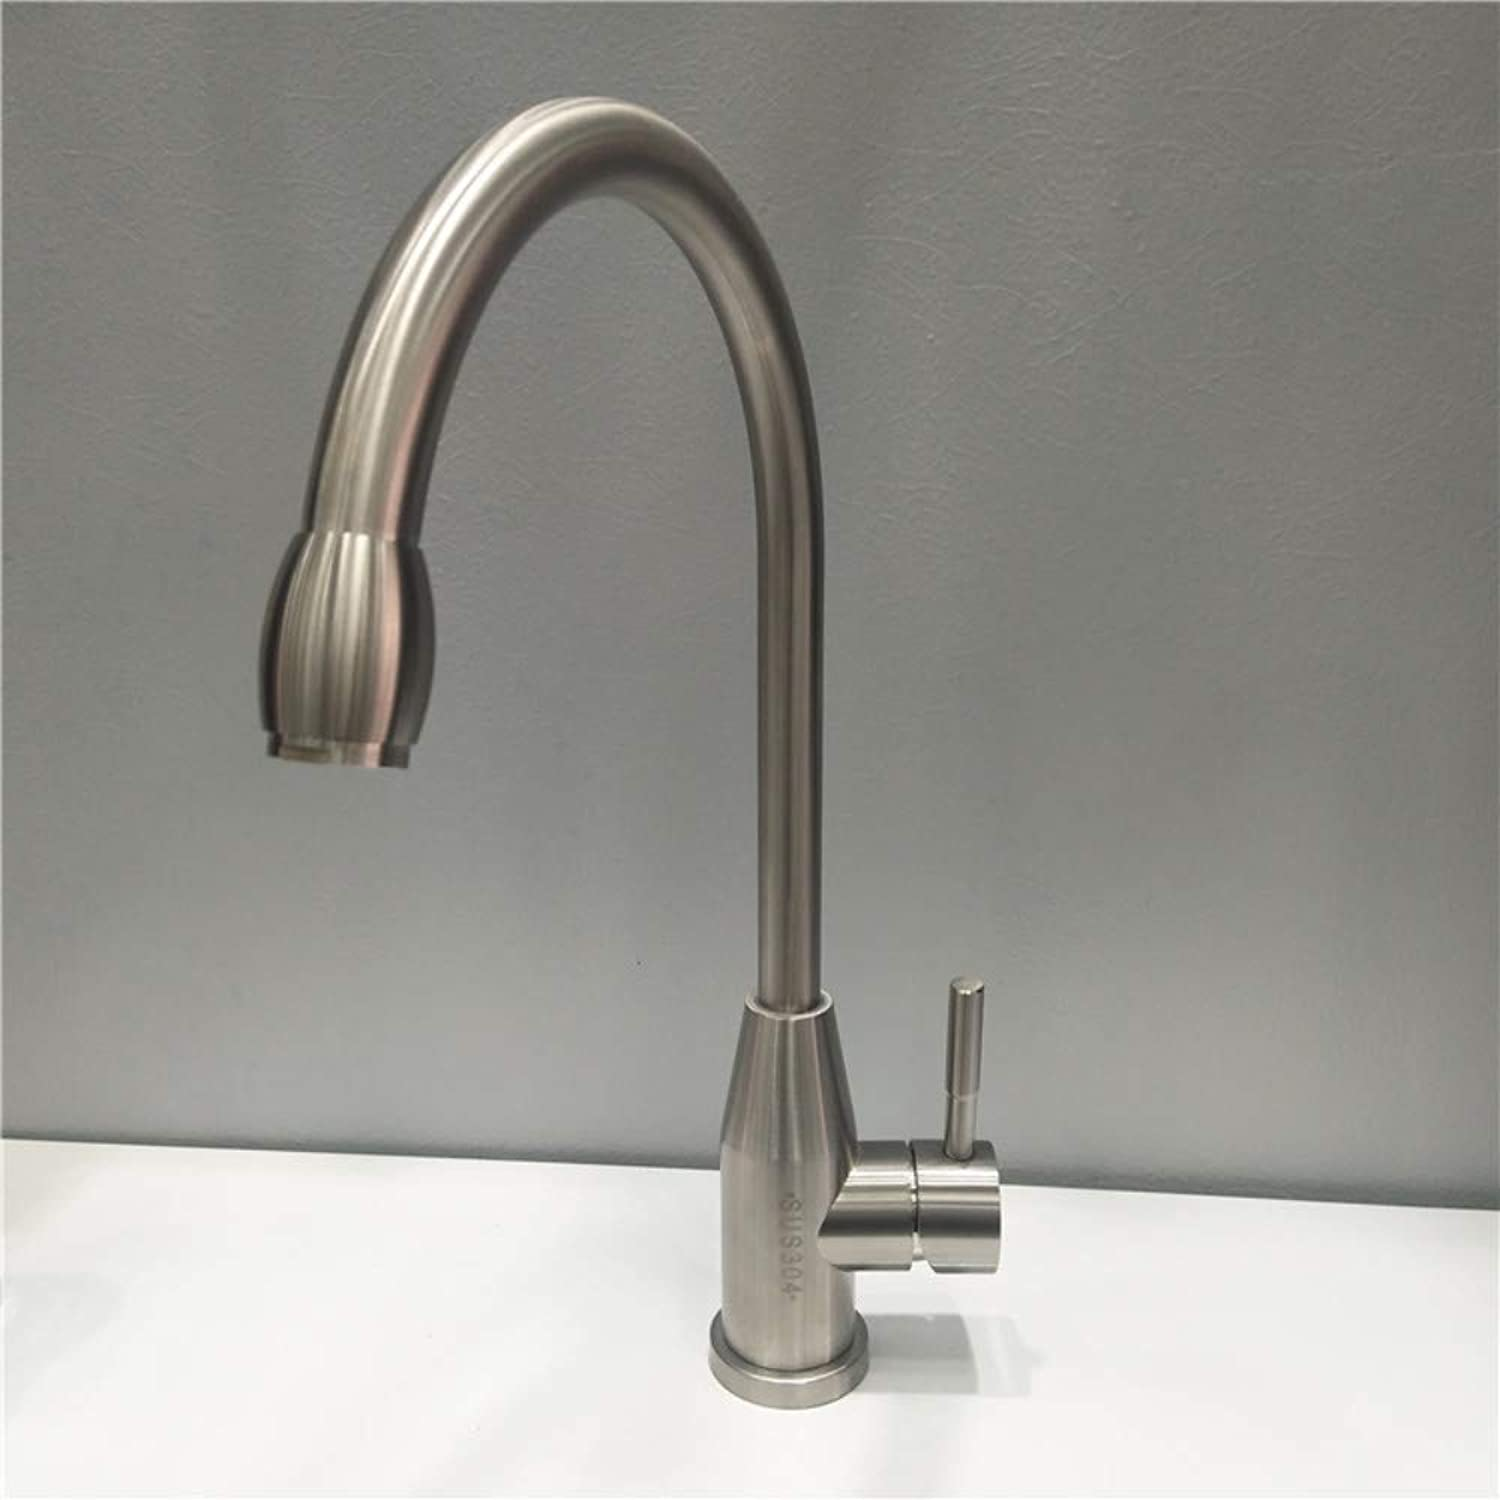 XPYFaucet Kitchen Sink Faucet Sink Hot And Cold Single Hole Mixing Valve